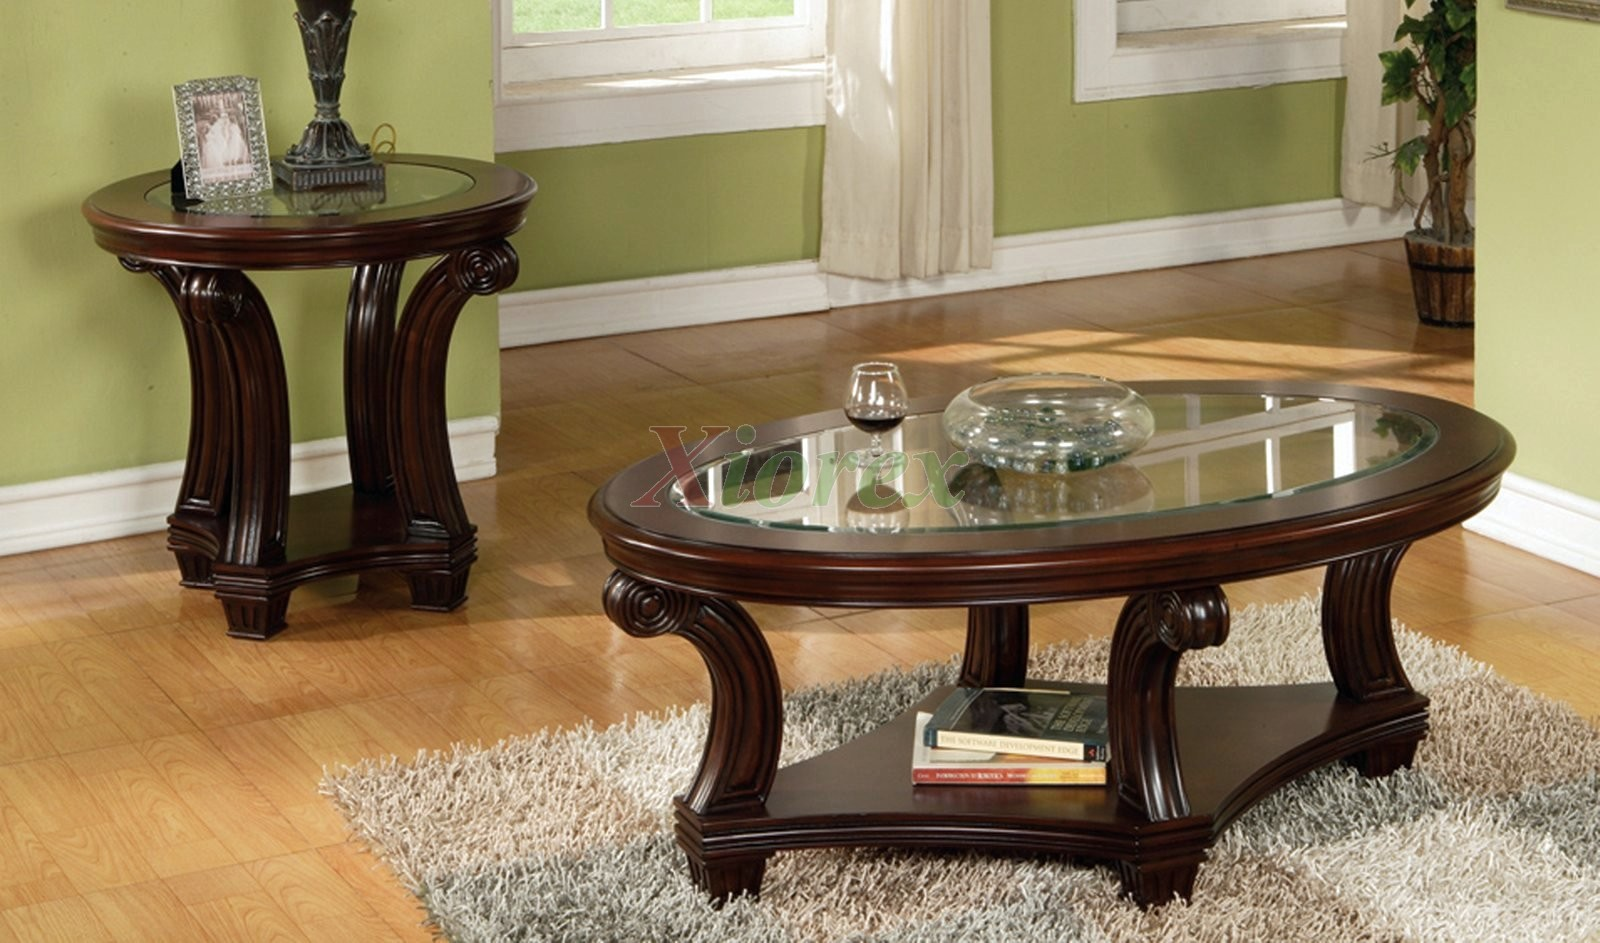 coffee tables ideas awesome wood table sets dark cherry handmade premium material transparant glass high quality green wallpaper background cool decoration and end ashley